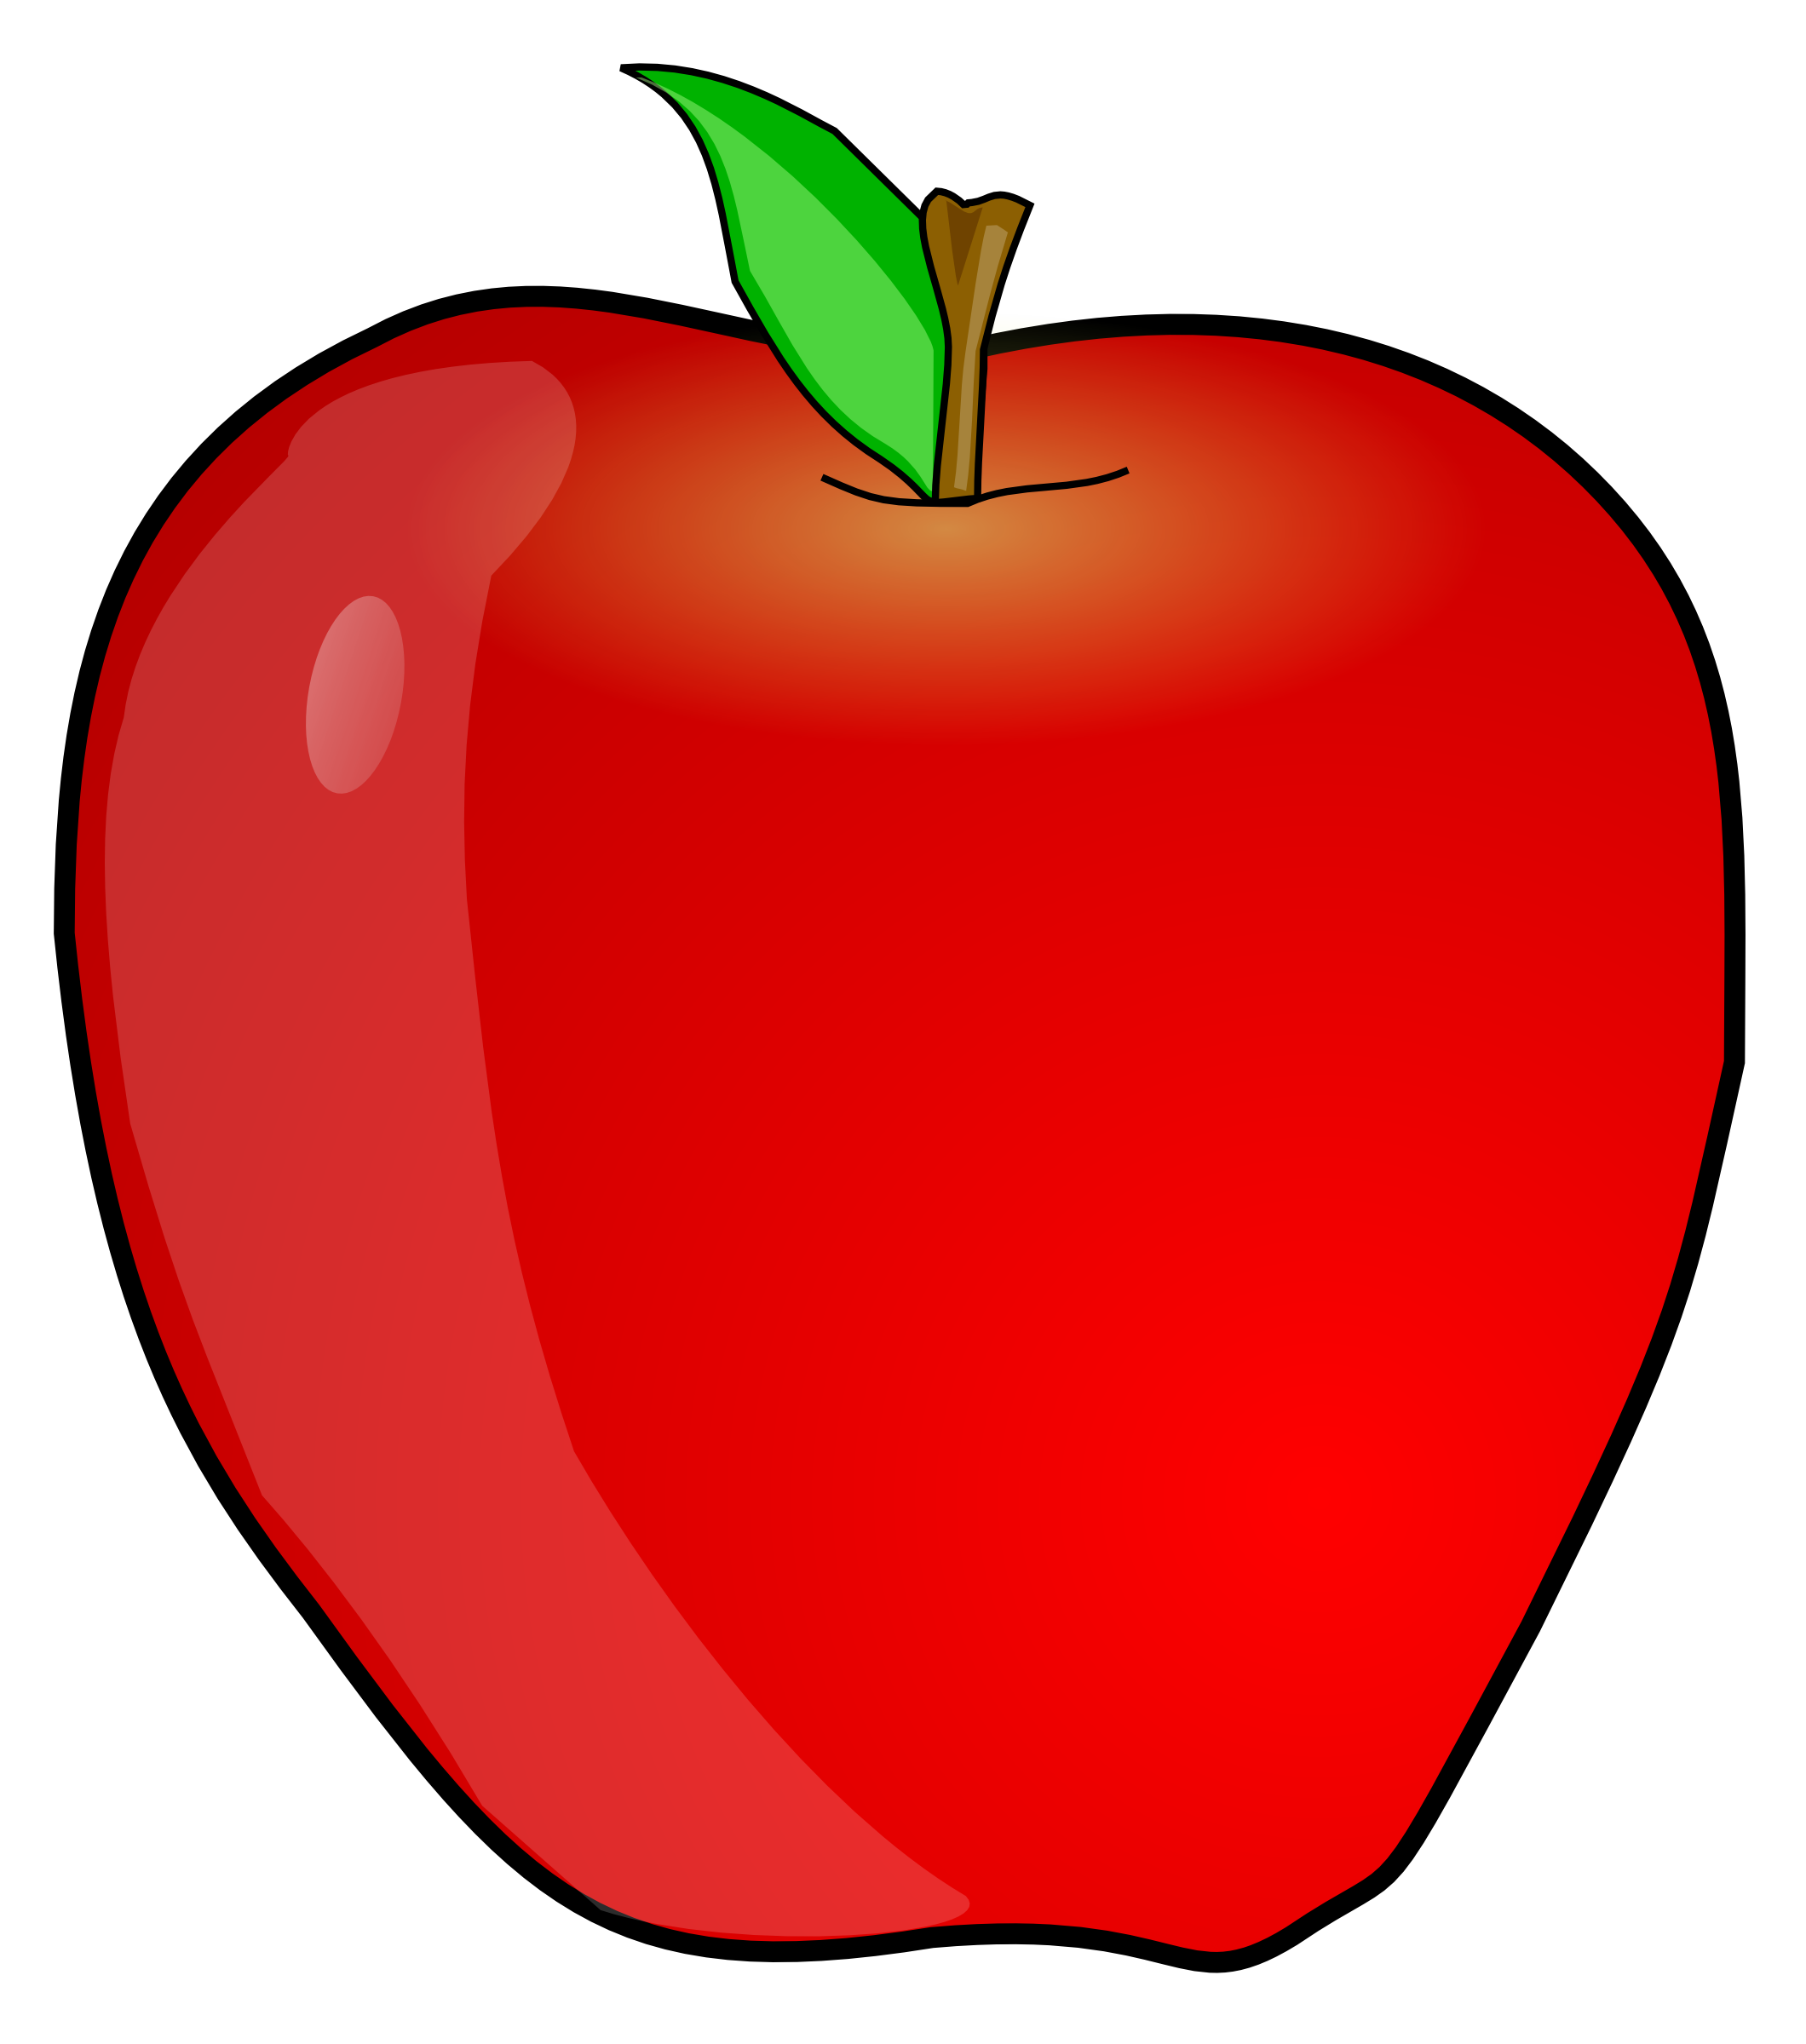 Man with apple clipart clipart download Teacher Apple Clipart - Hanslodge Cliparts clipart download